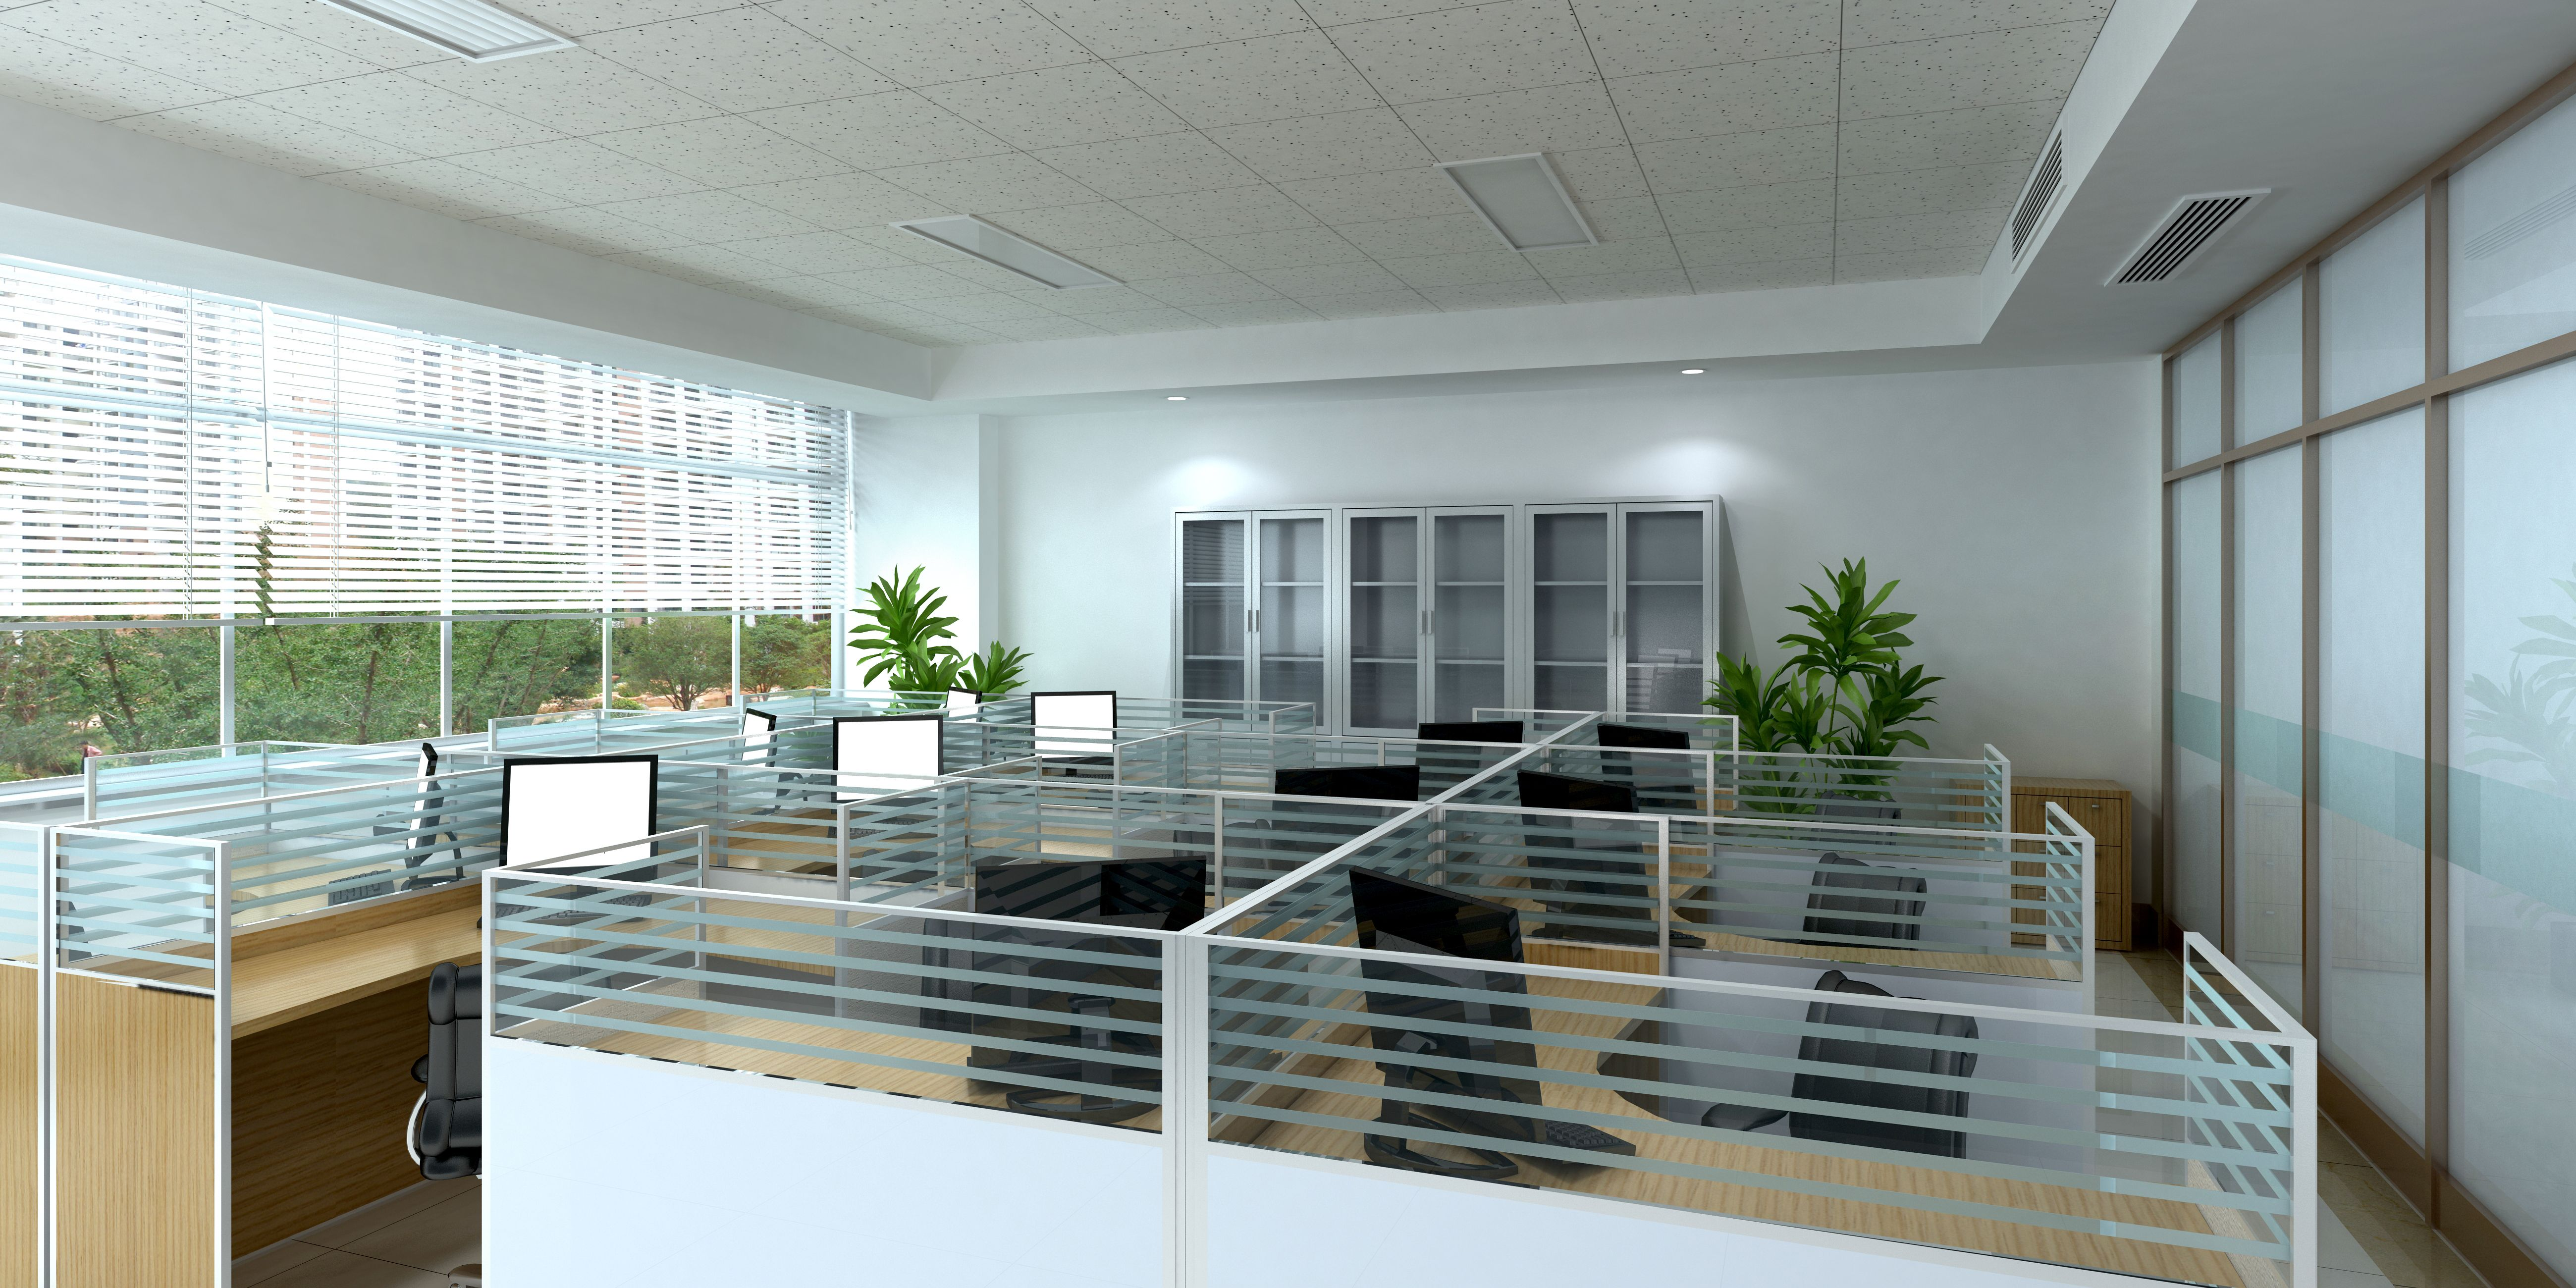 Interior Space Design Enchanting 40 Office Building Interior Design Design Decoration